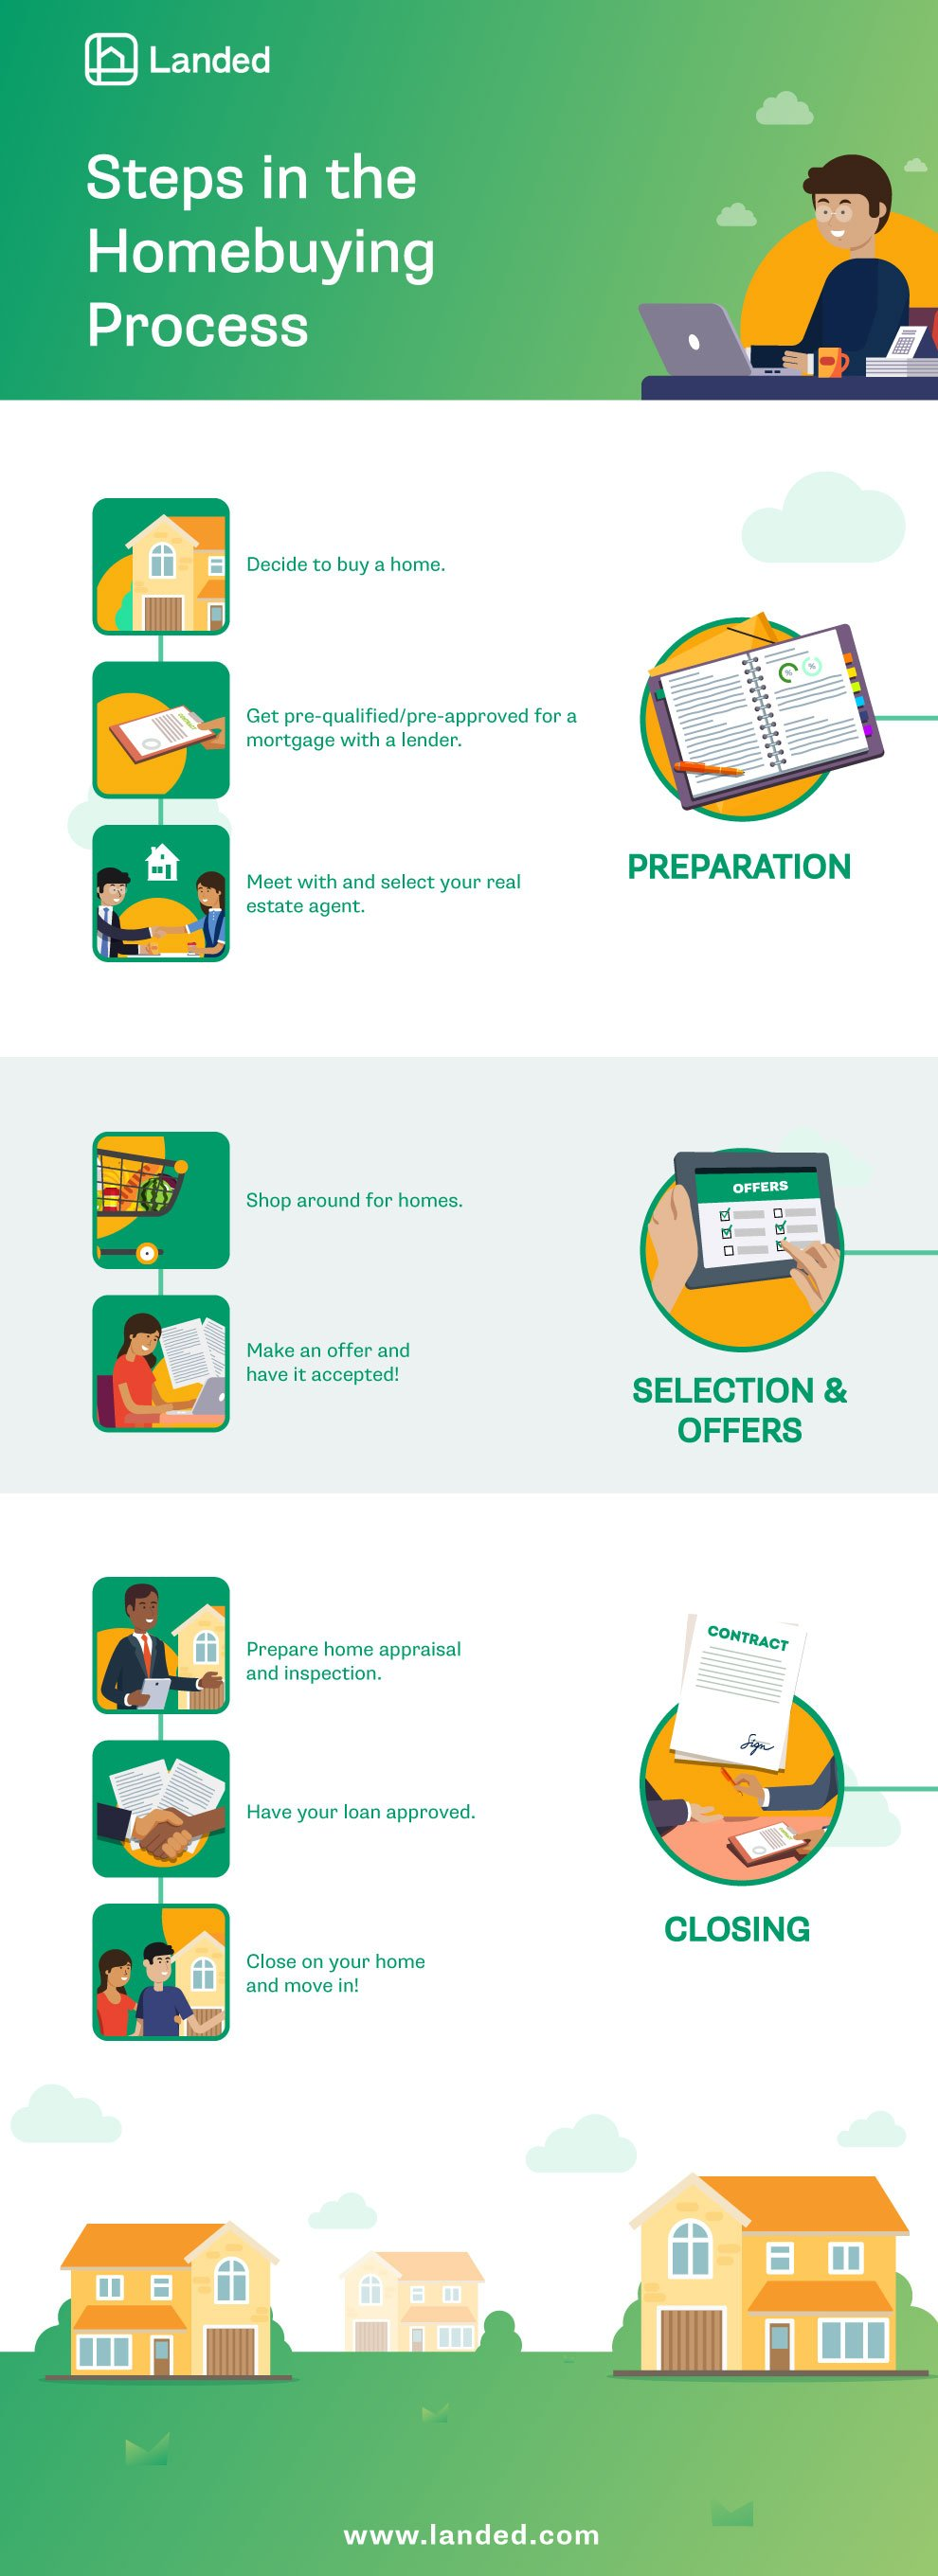 Steps-in-the-Homebuying-Process